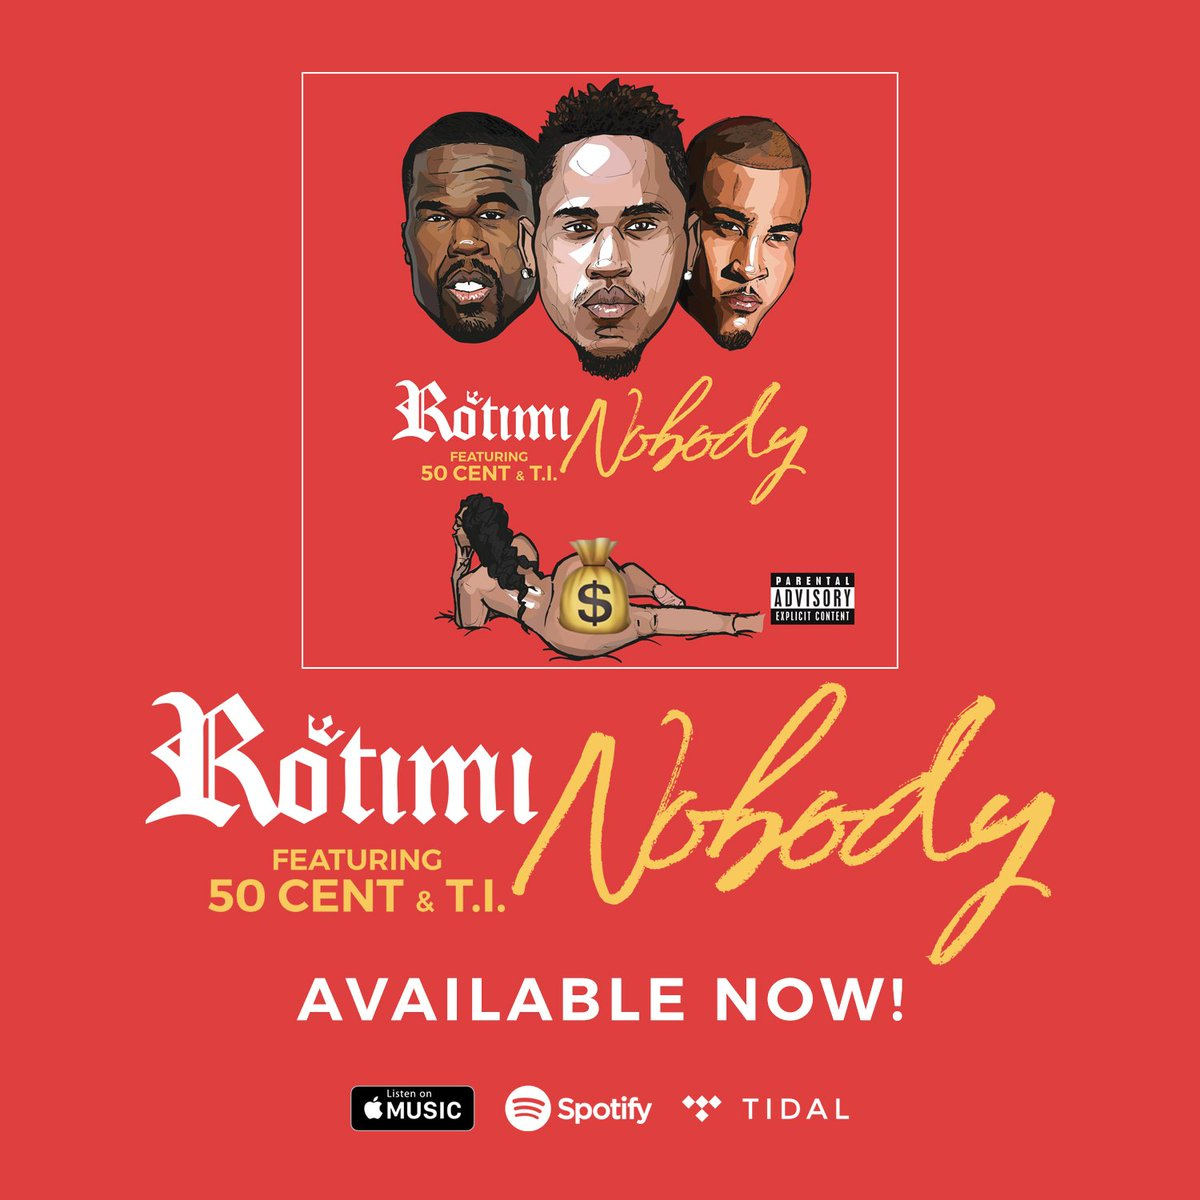 rotimi royal wednesday tracklistrotimi living foul, rotimi situation, rotimi obeisun, rotimi akinosho, rotimi akeredolu, rotimi summer bangerz, rotimi instagram, rotimi nobody, rotimi williams, rotimi akeju, rotimi doing it lyrics, rotimi royal wednesday tracklist, rotimi situation lyrics, rotimi films, rotimi fani kayode, rotimi what they want, rotimi amaechi, rotimi lotto, rotimi lotto lyrics, rotimi have you lyrics